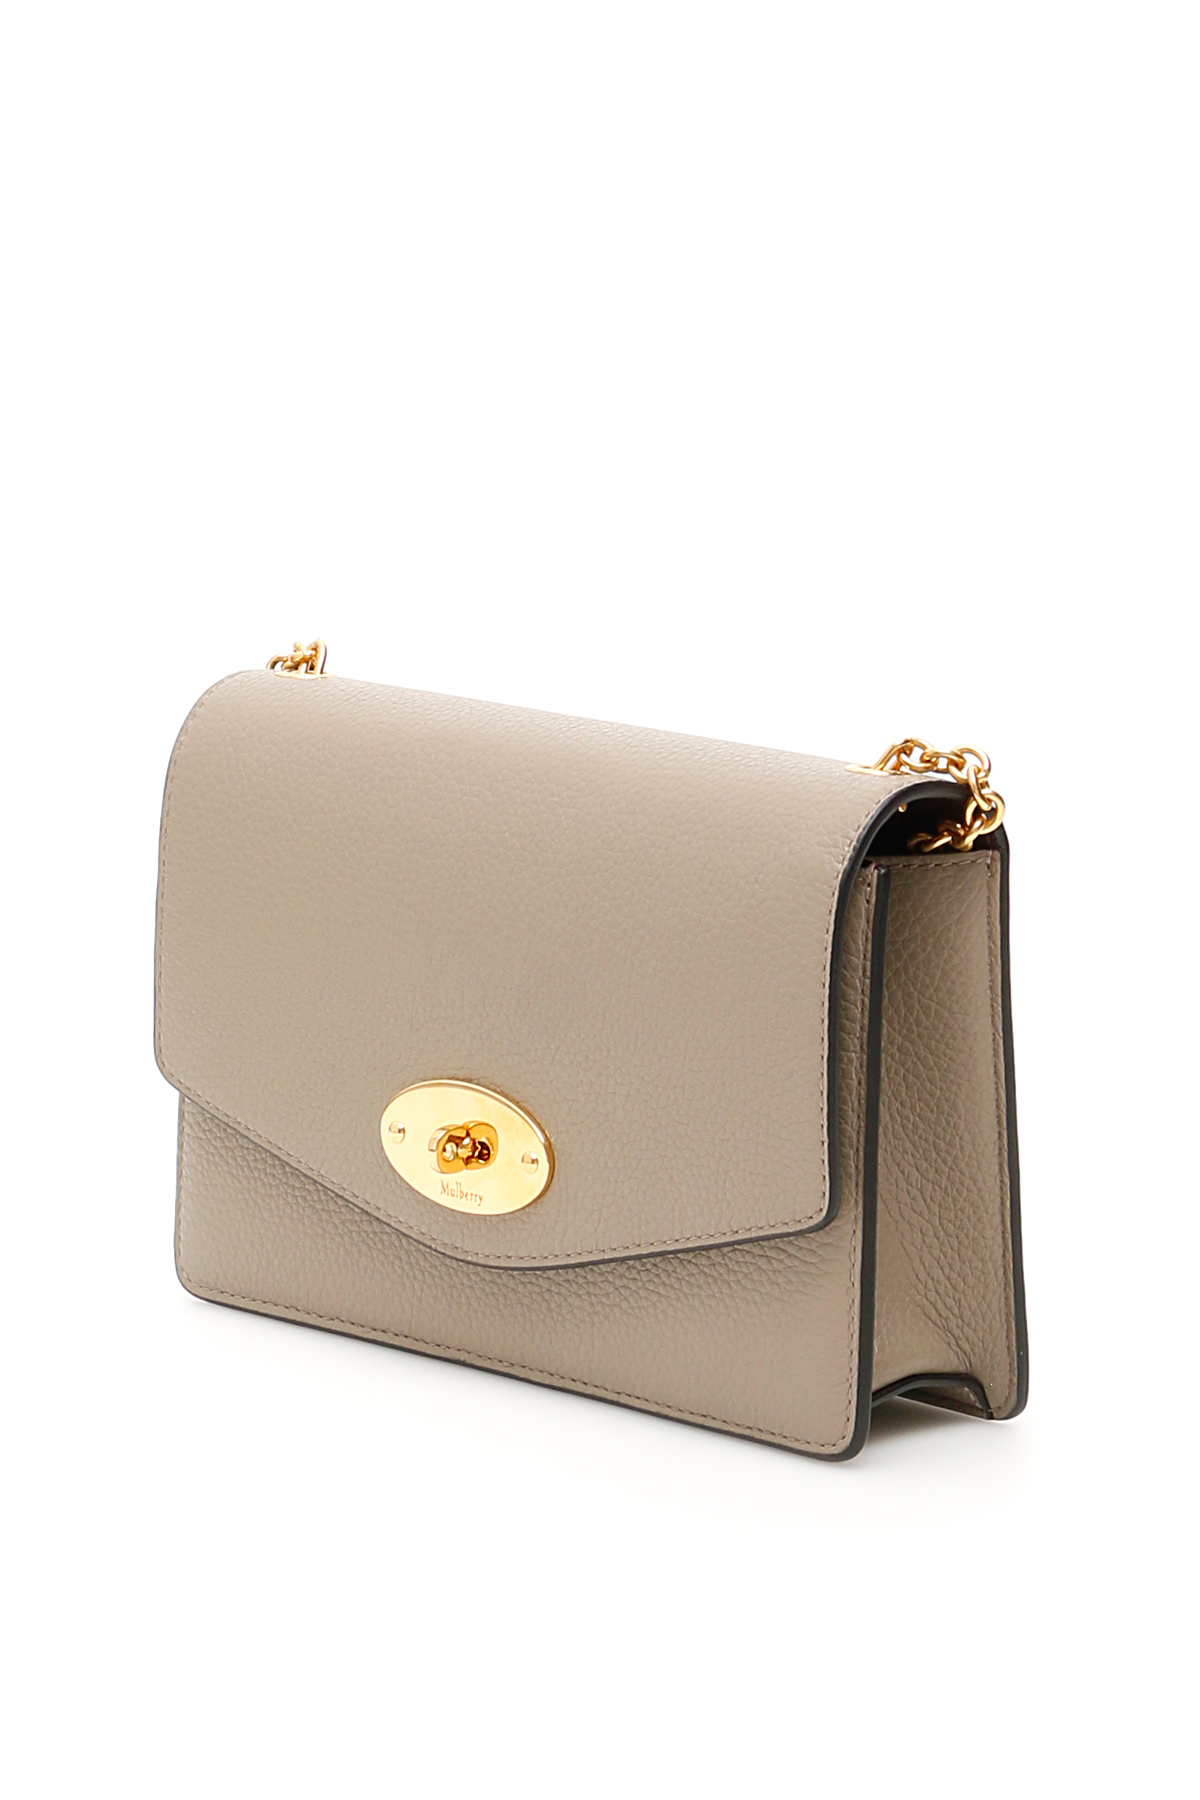 MULBERRY Leathers GRAIN LEATHER SMALL DARLEY BAG